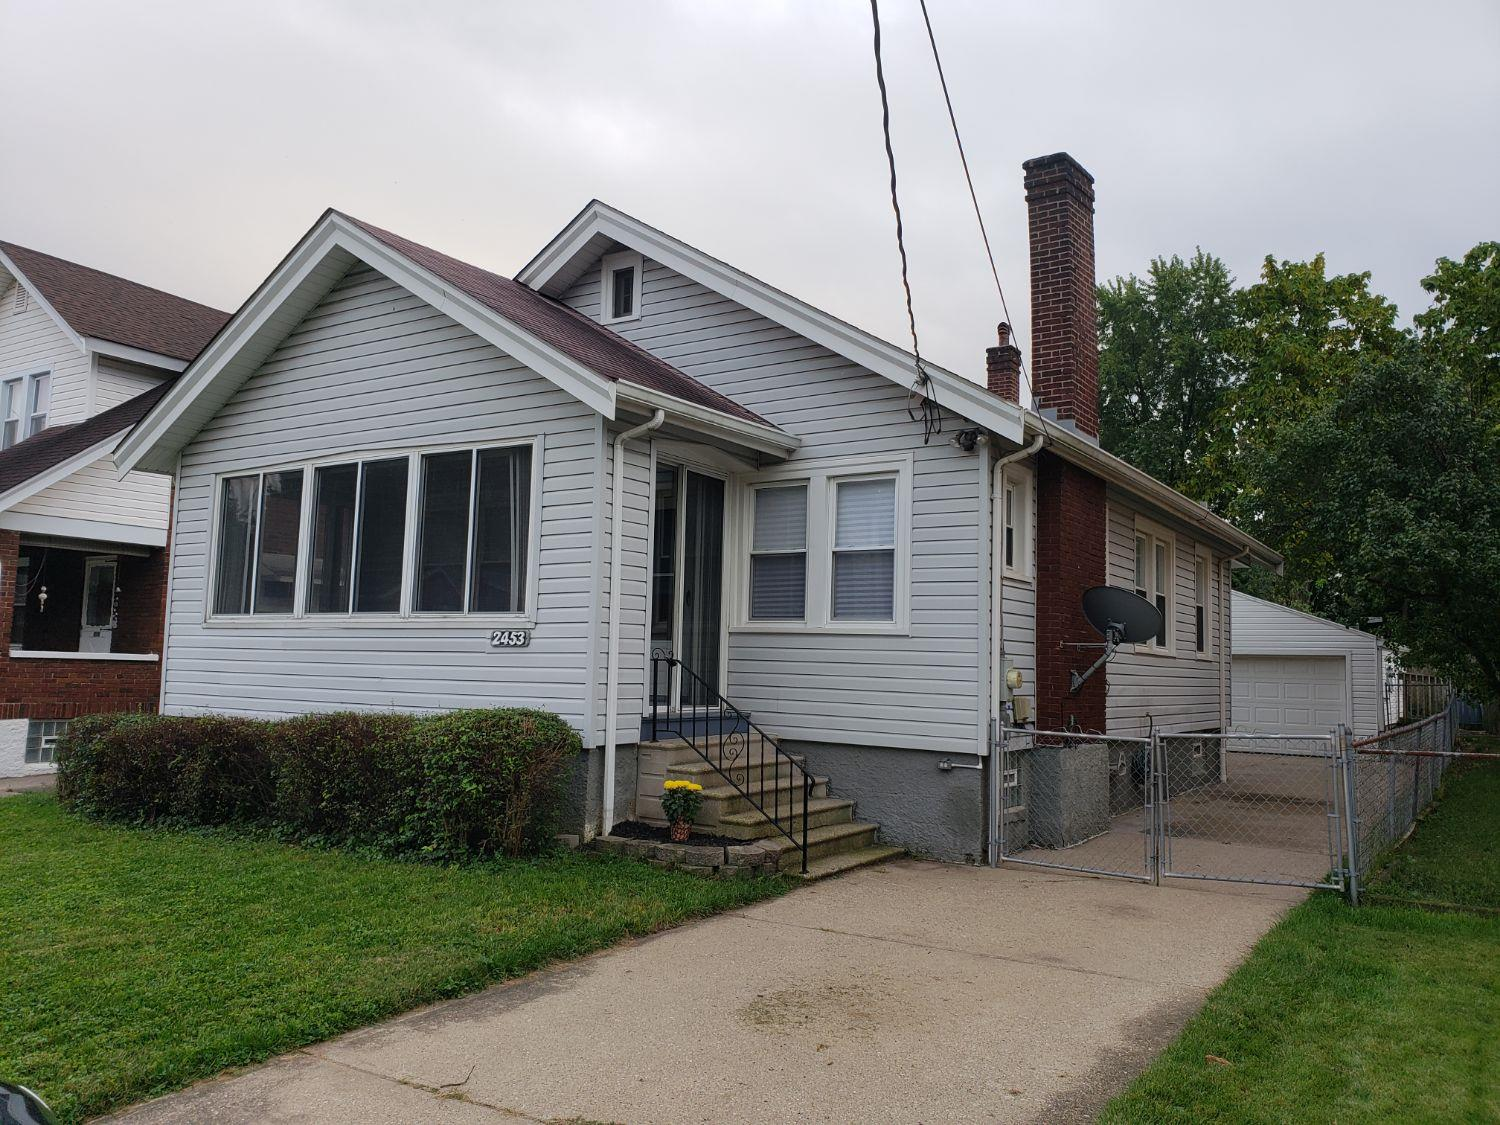 Property for sale at 2453 Williams Avenue, Norwood,  OH 45212